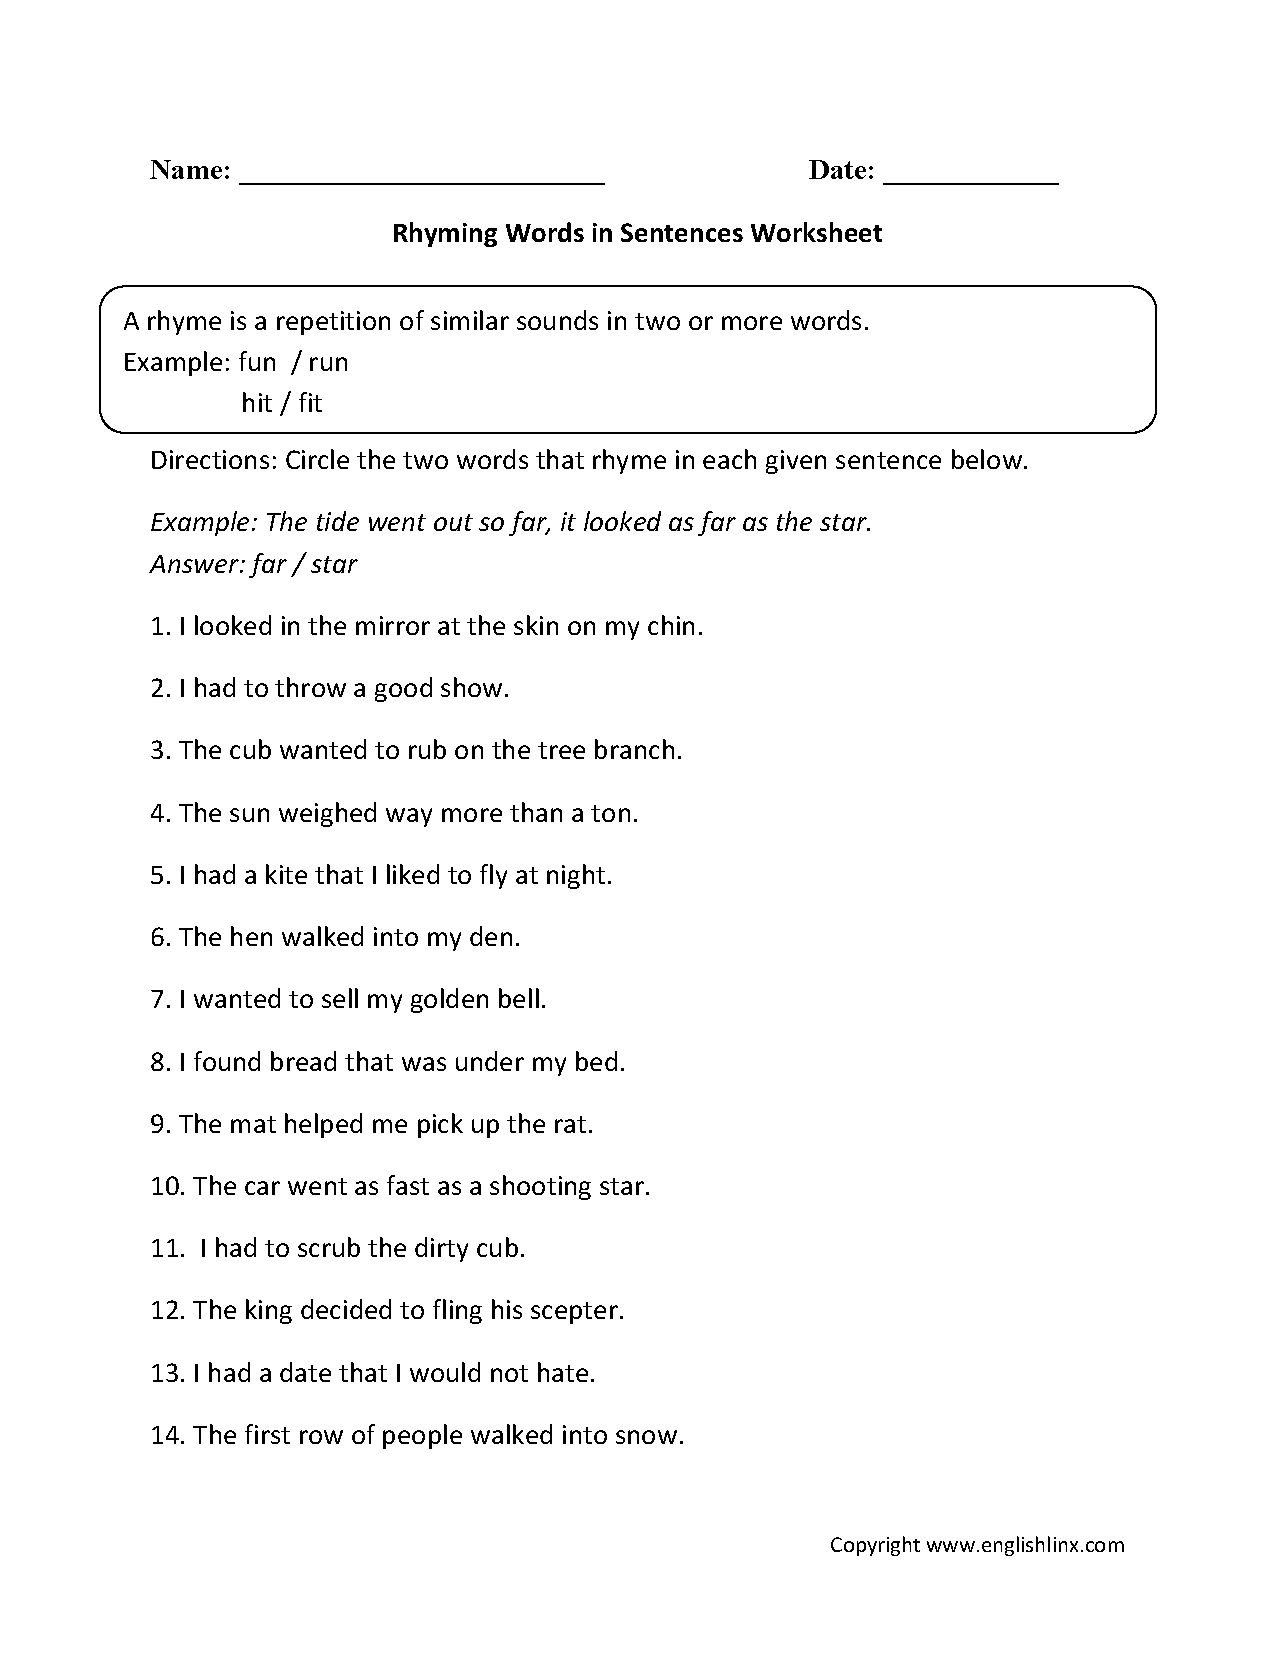 Worksheets List Of Rhyming Words In English rhyming worksheets words in sentences worksheet worksheet